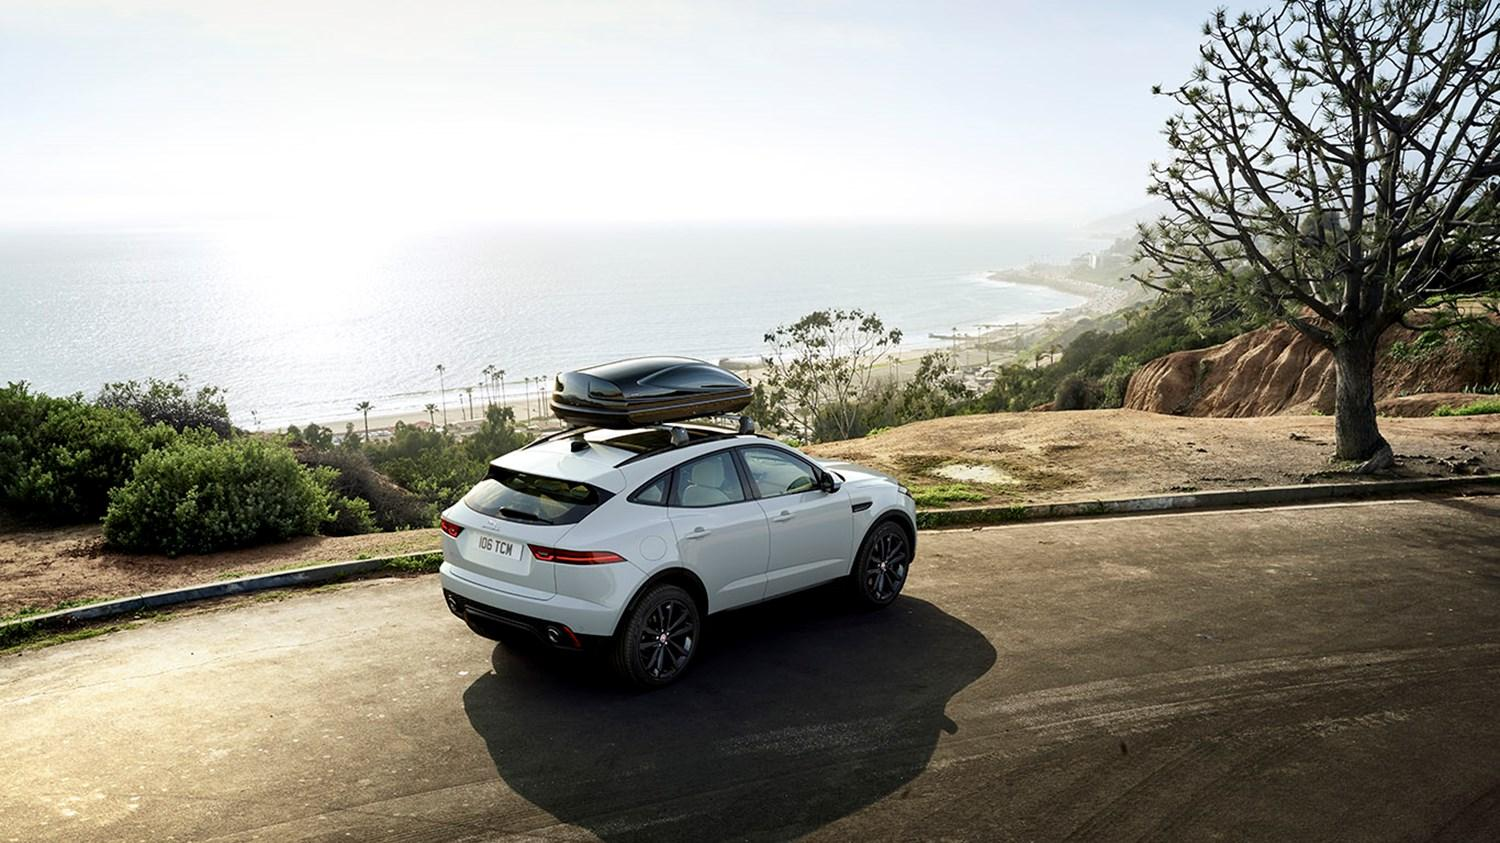 Arial view of a white Jaguar E-Pace